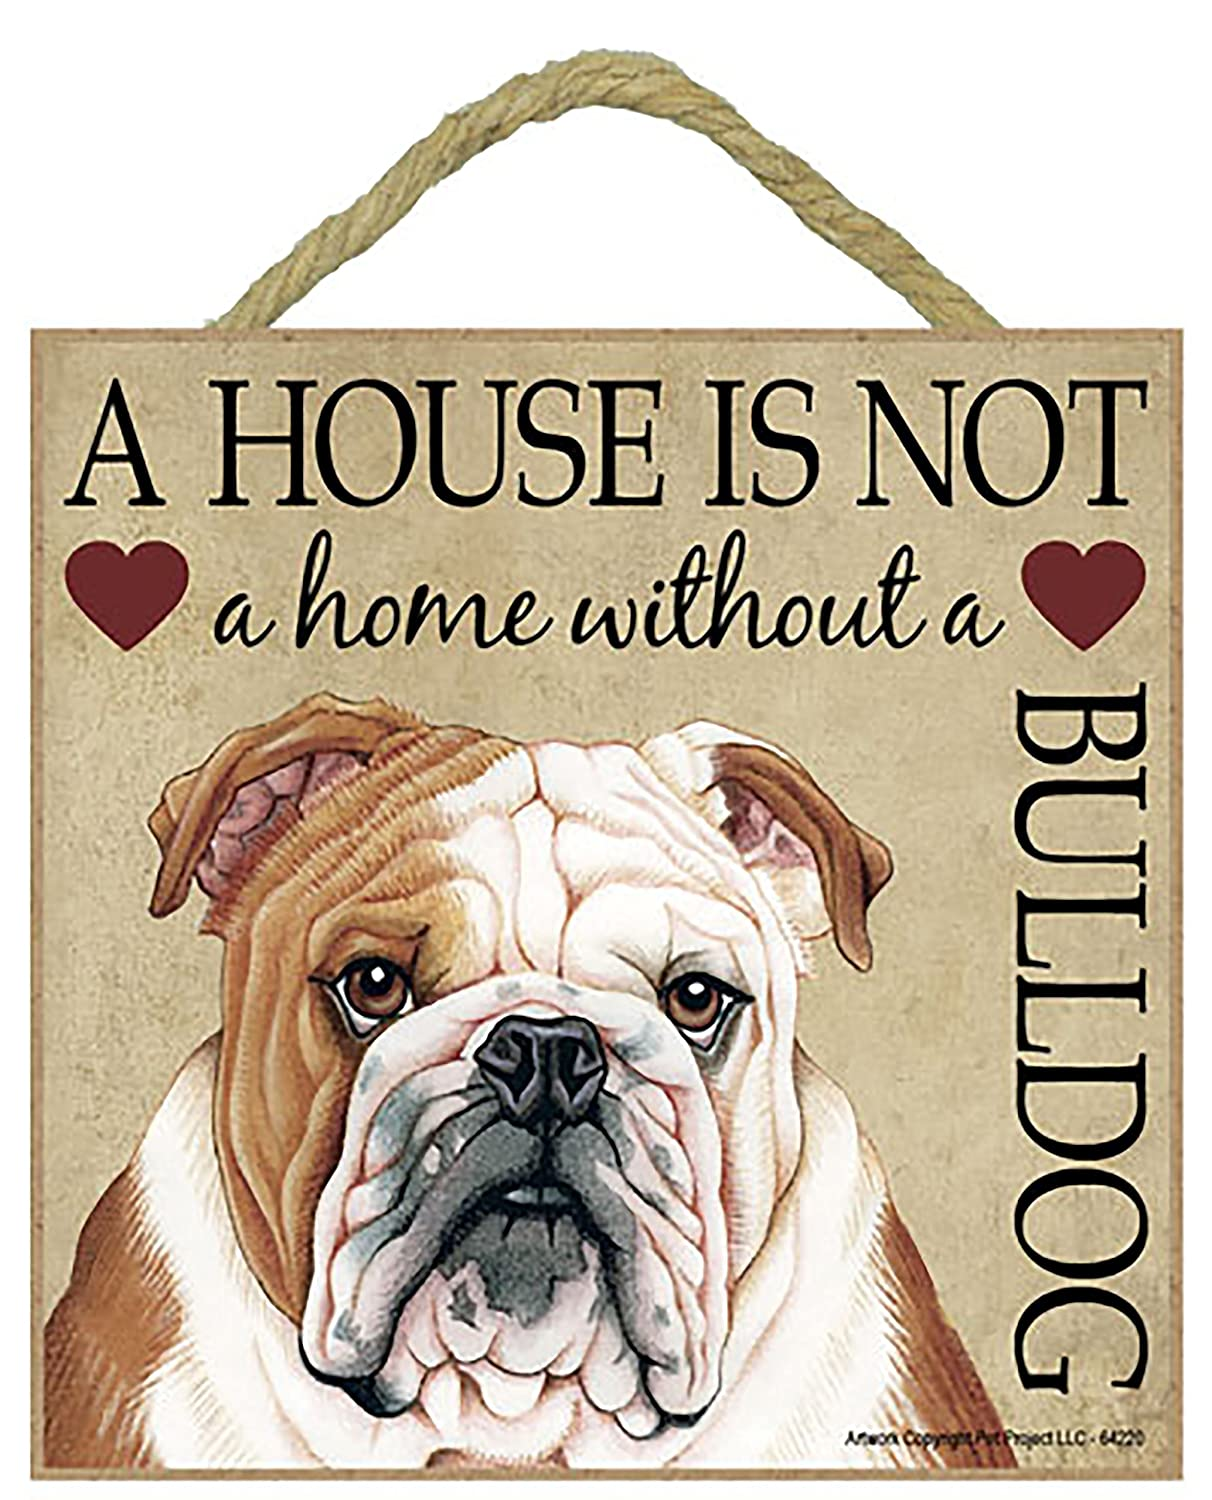 Britsh Bulldog Cane regalo. Bella cartello in legno - ' House non è una casa  - Hang o stare sul podio. Car-Pets Ltd